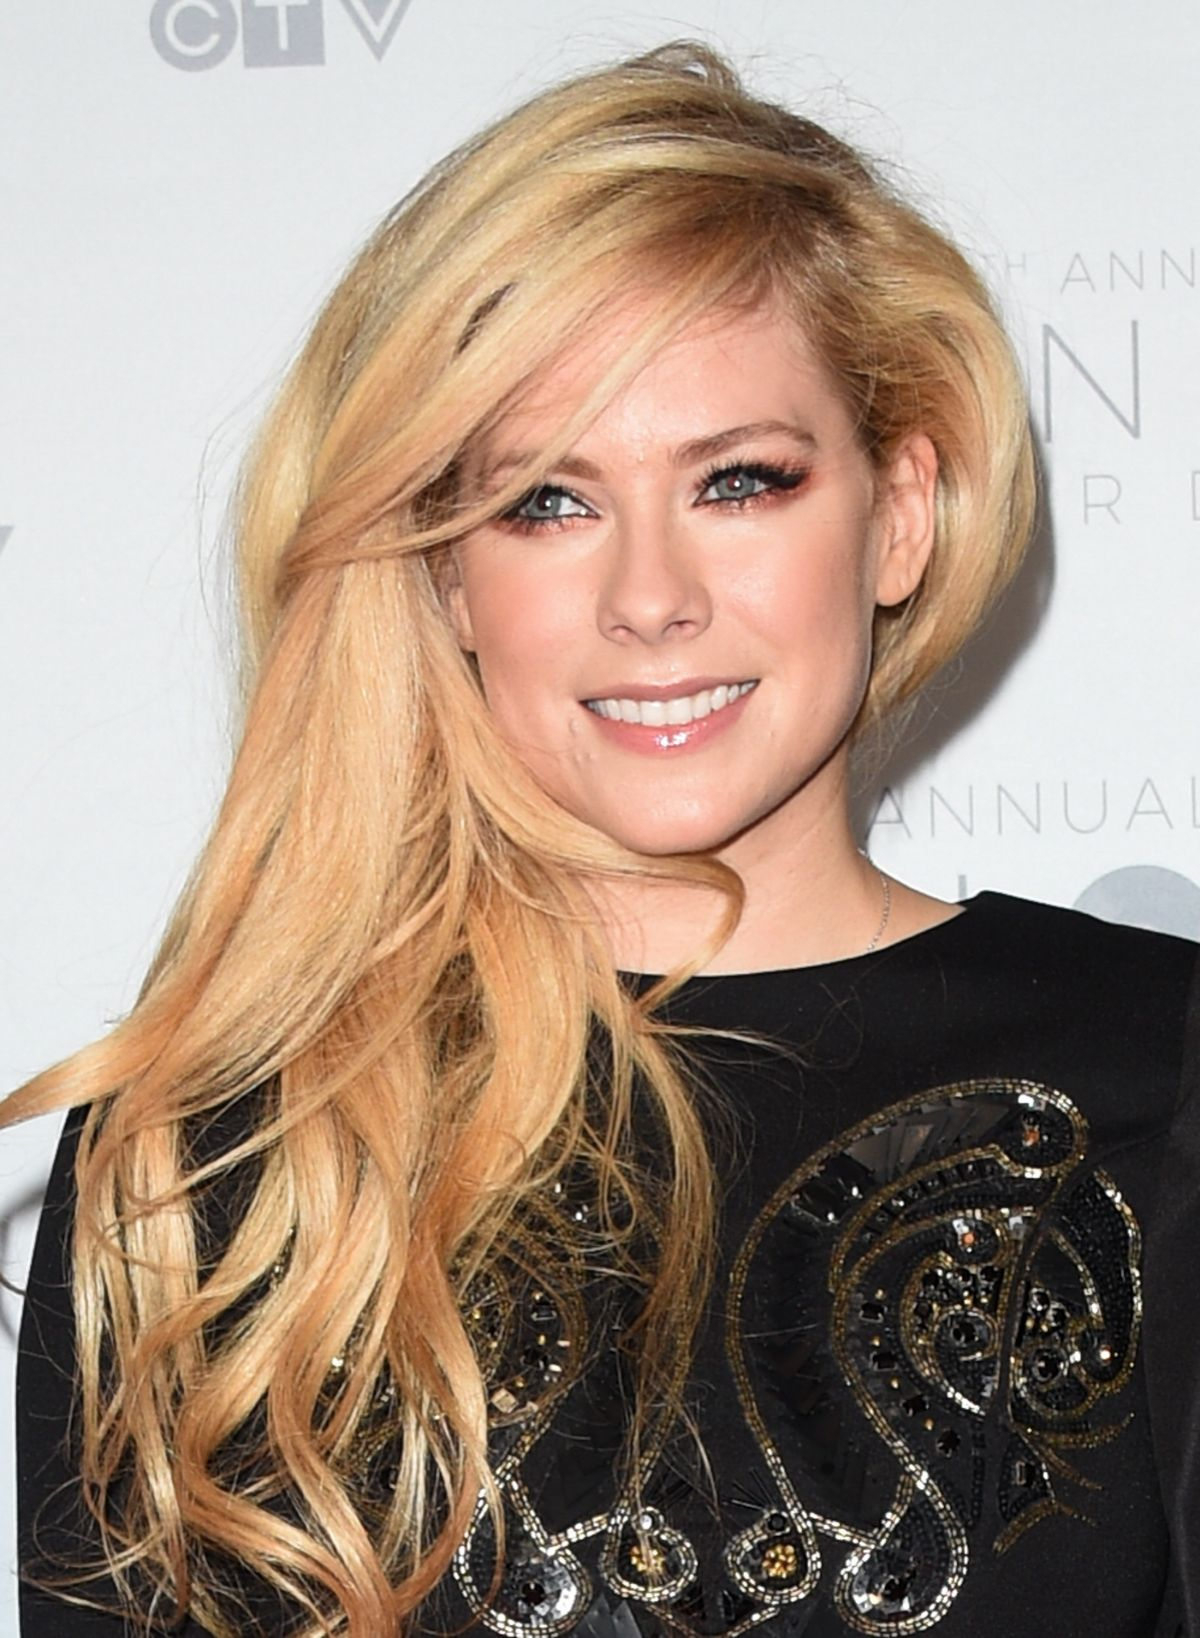 AVRIL LAVIGNE at Juno Awards in Calgary 04/03/2016 ...: http://www.hawtcelebs.com/avril-lavigne-juno-awards-calgary-04032016/